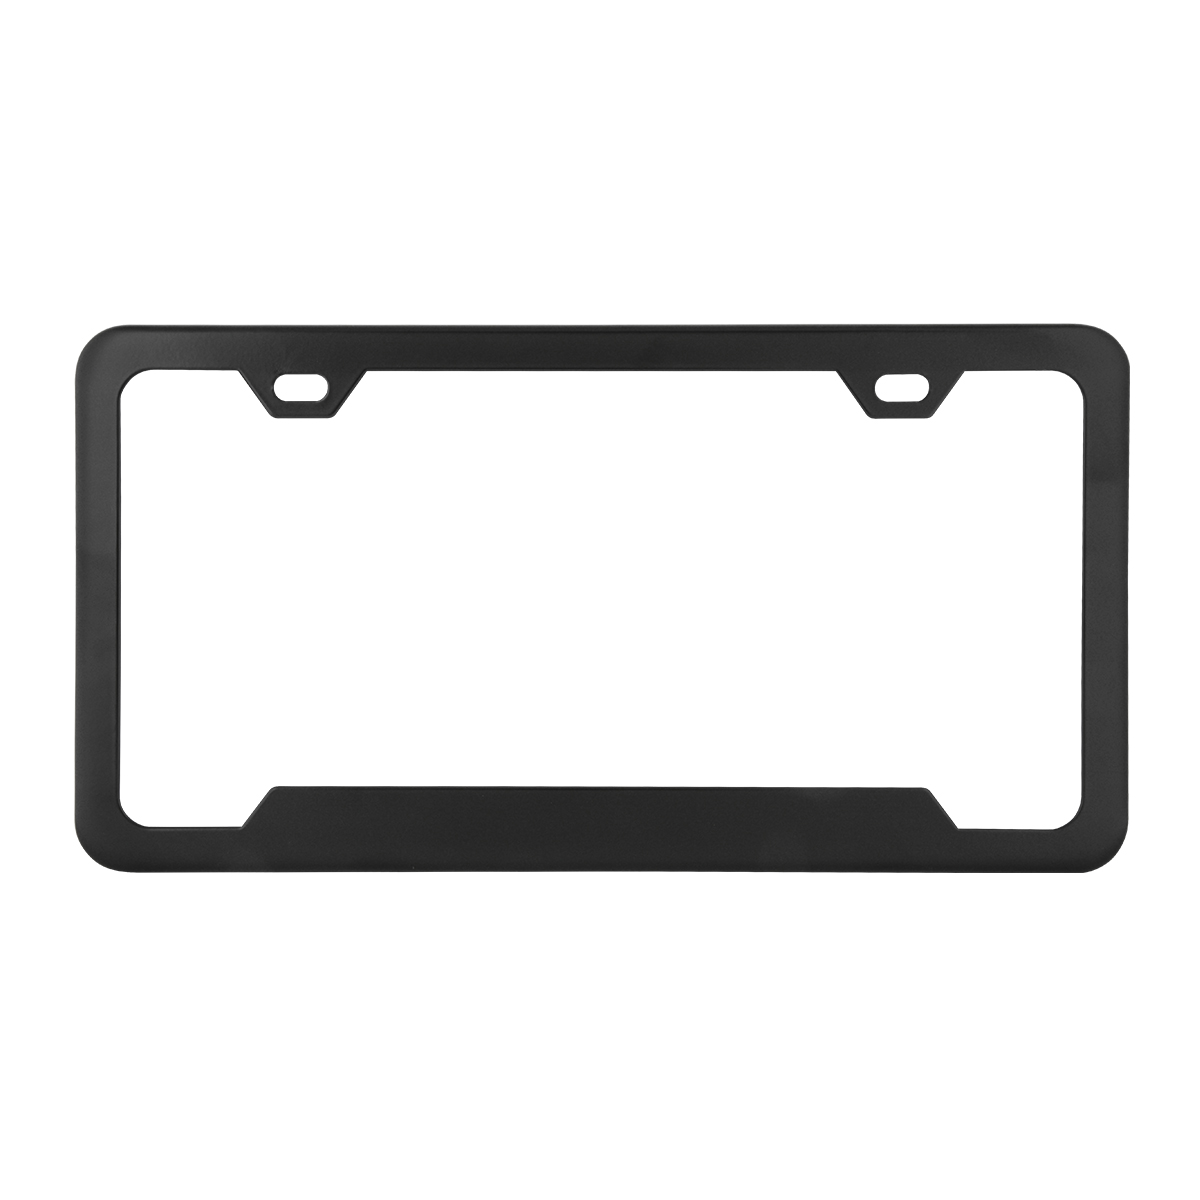 60410 Plain 2-Hole License Plate Frames with Center Raised